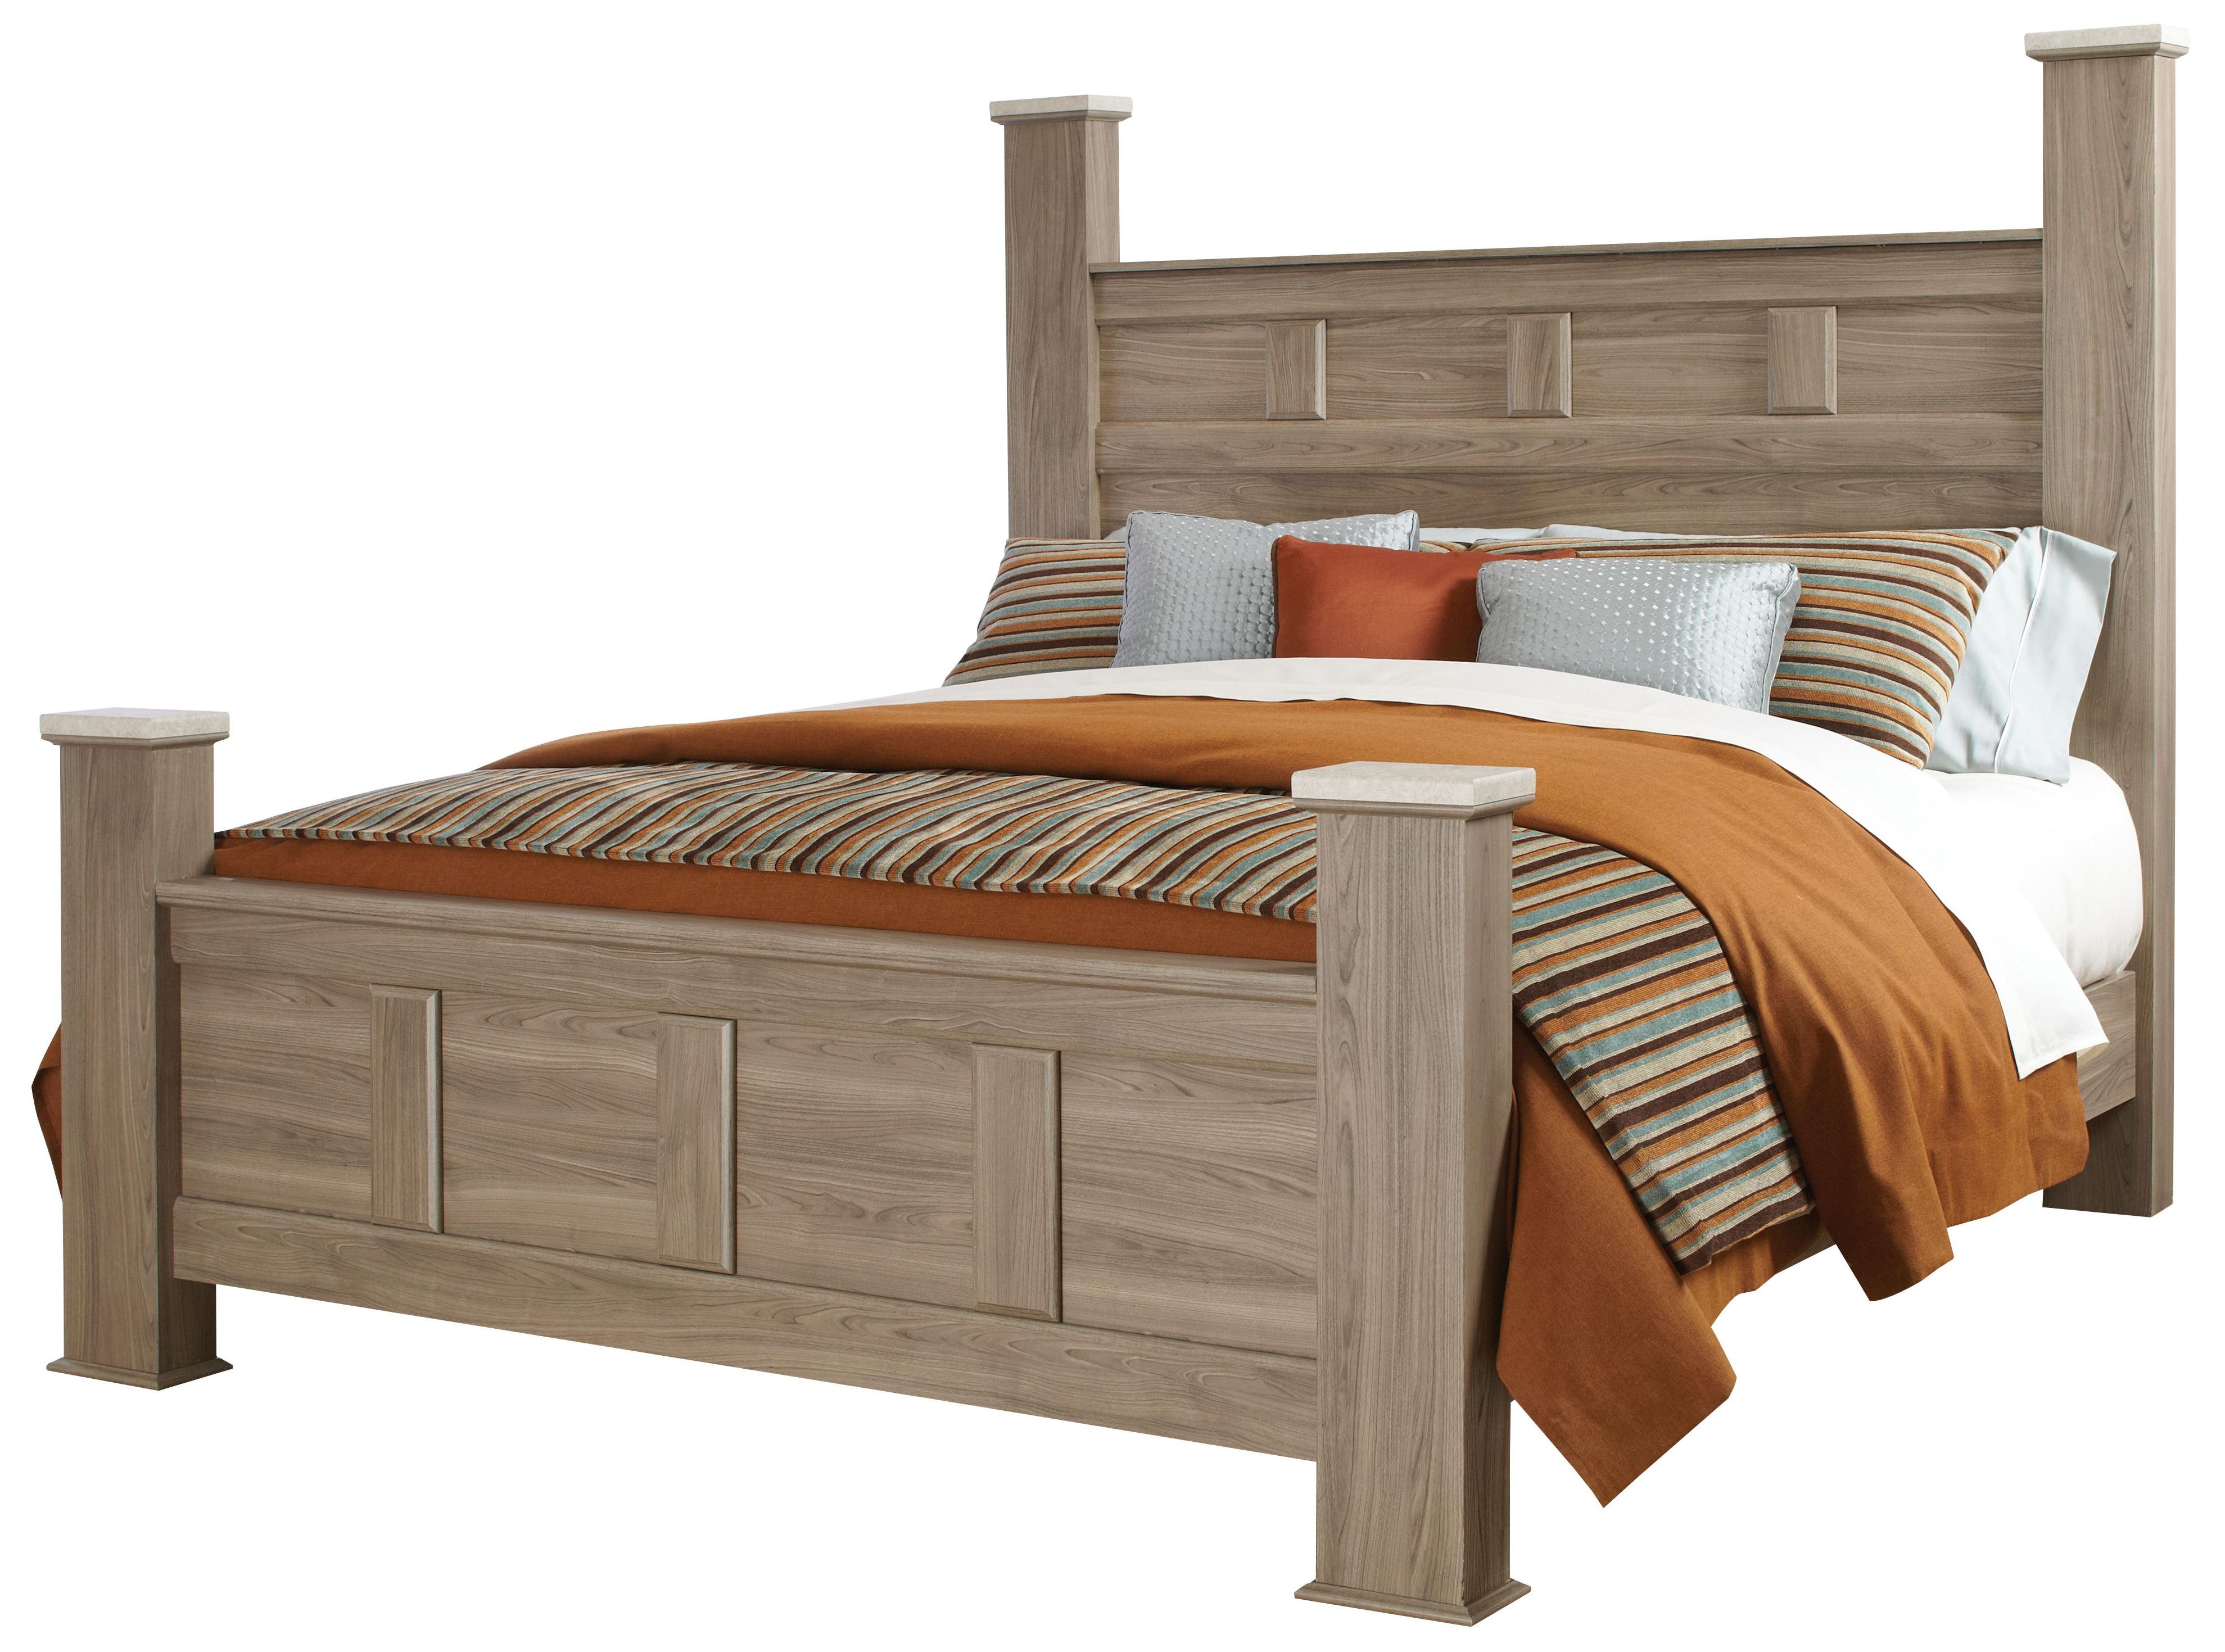 Standard Furniture Stonehill King Poster Bed - Item Number: 69416+26+20+2069402